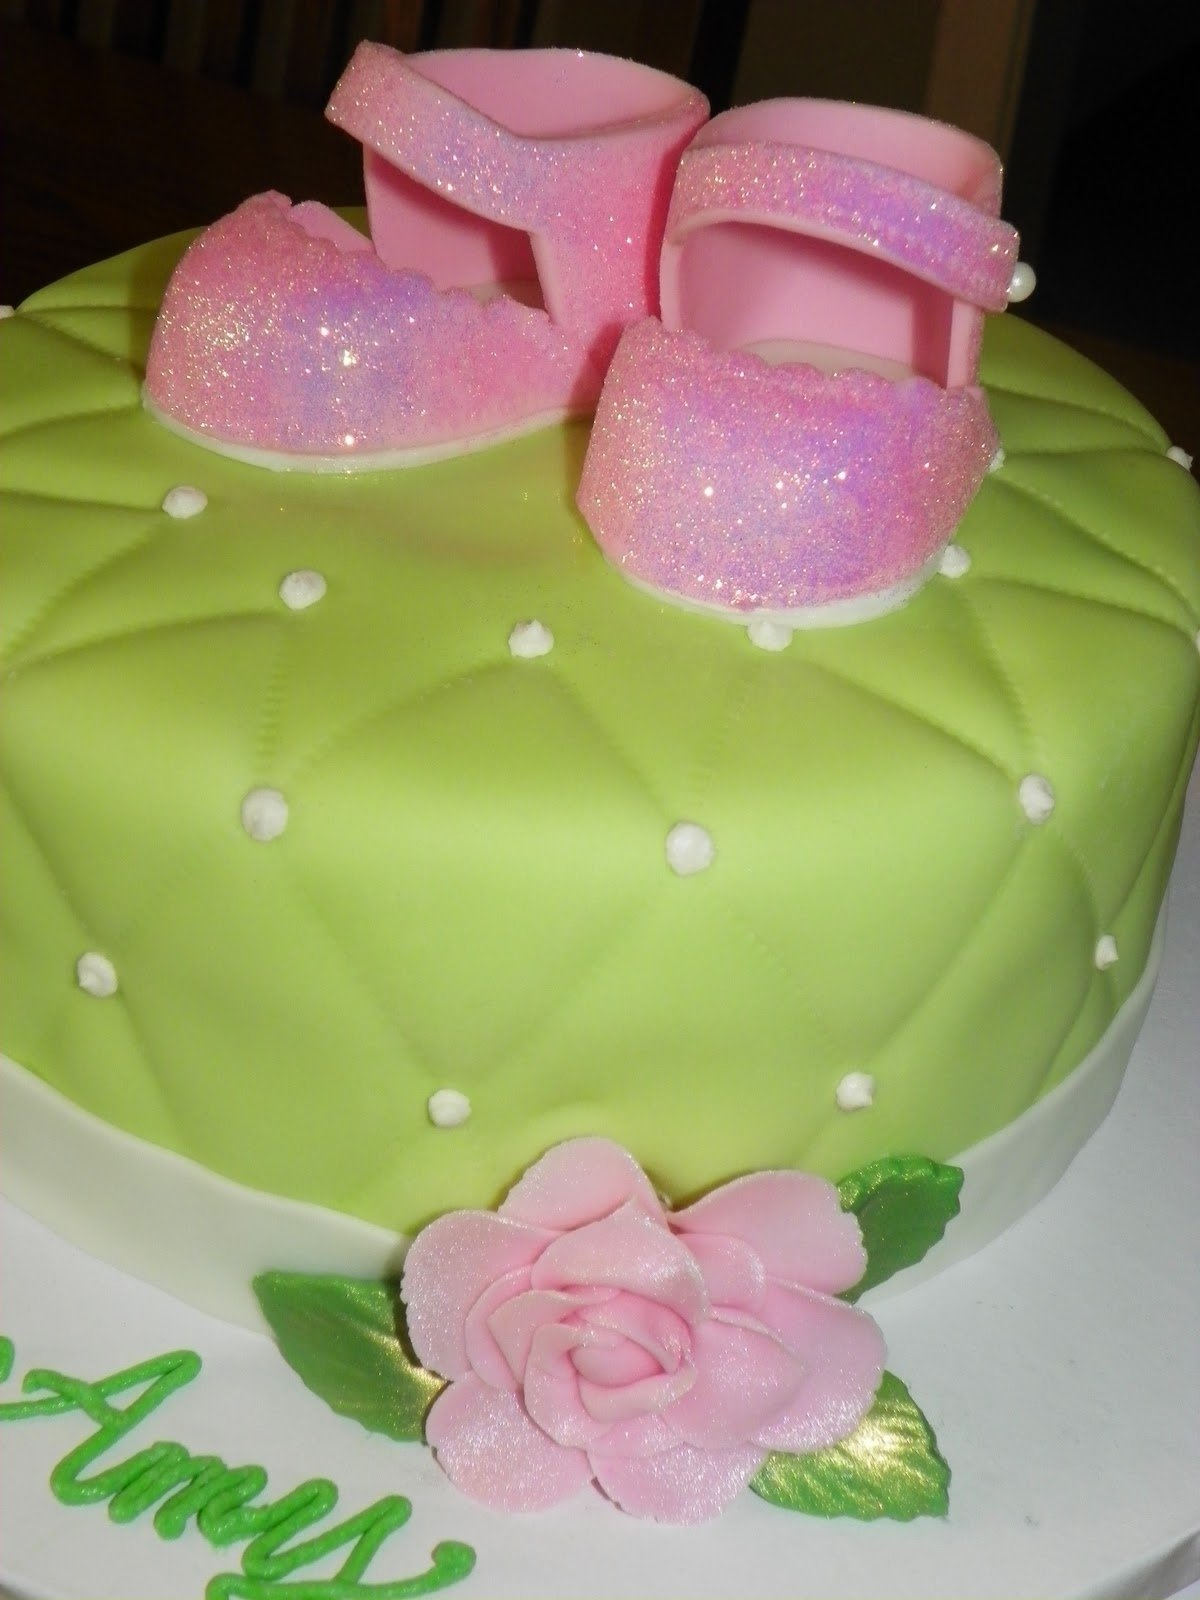 10 Famous Pink And Green Baby Shower Ideas photo pink and green owl baby image 2020